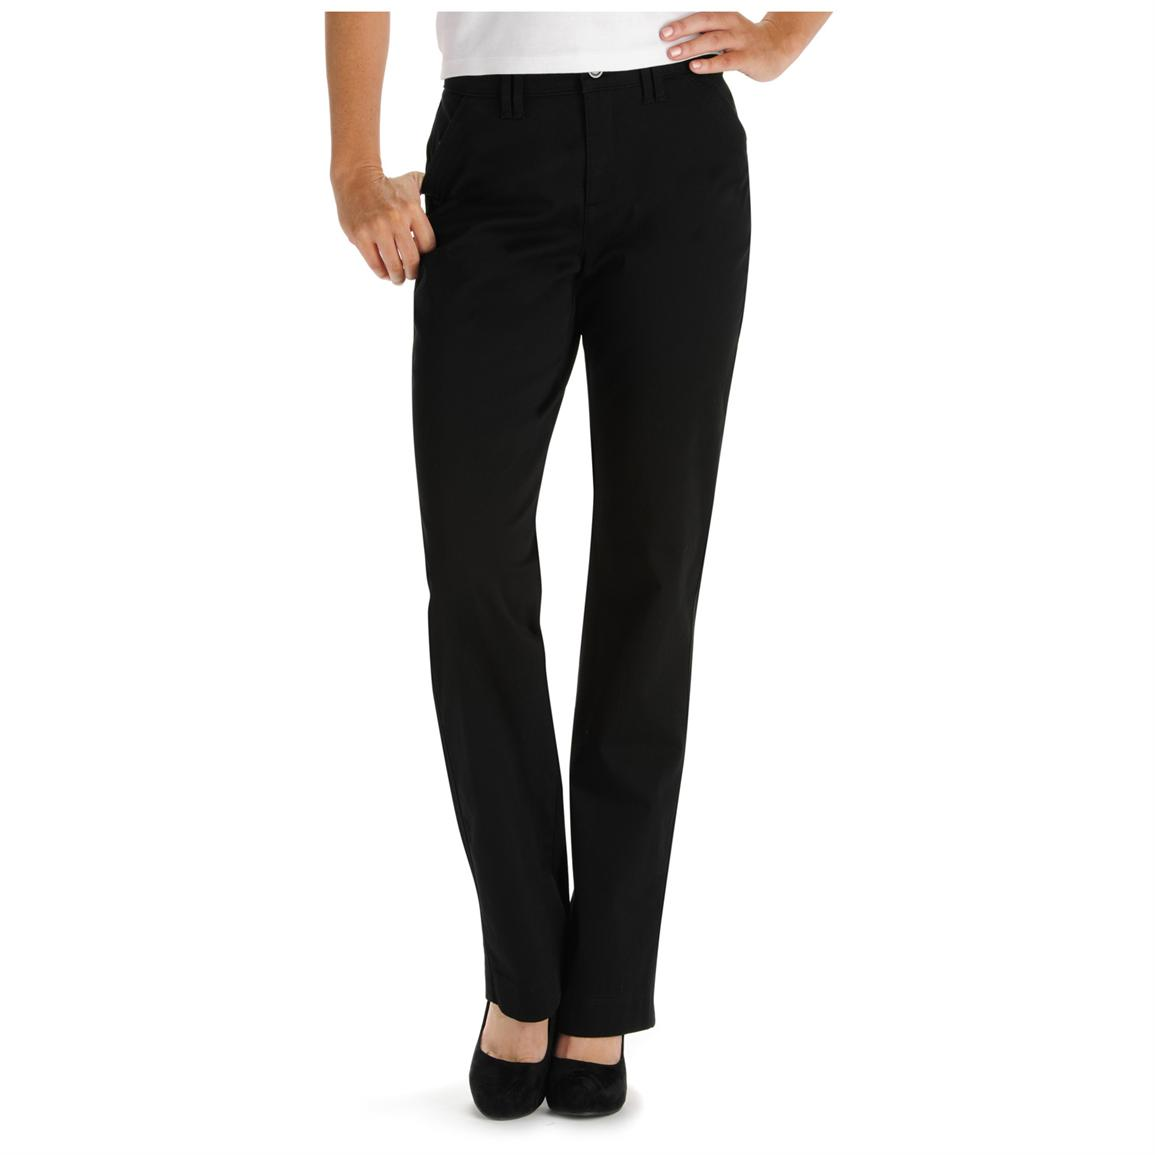 lee womens pants photo - 1